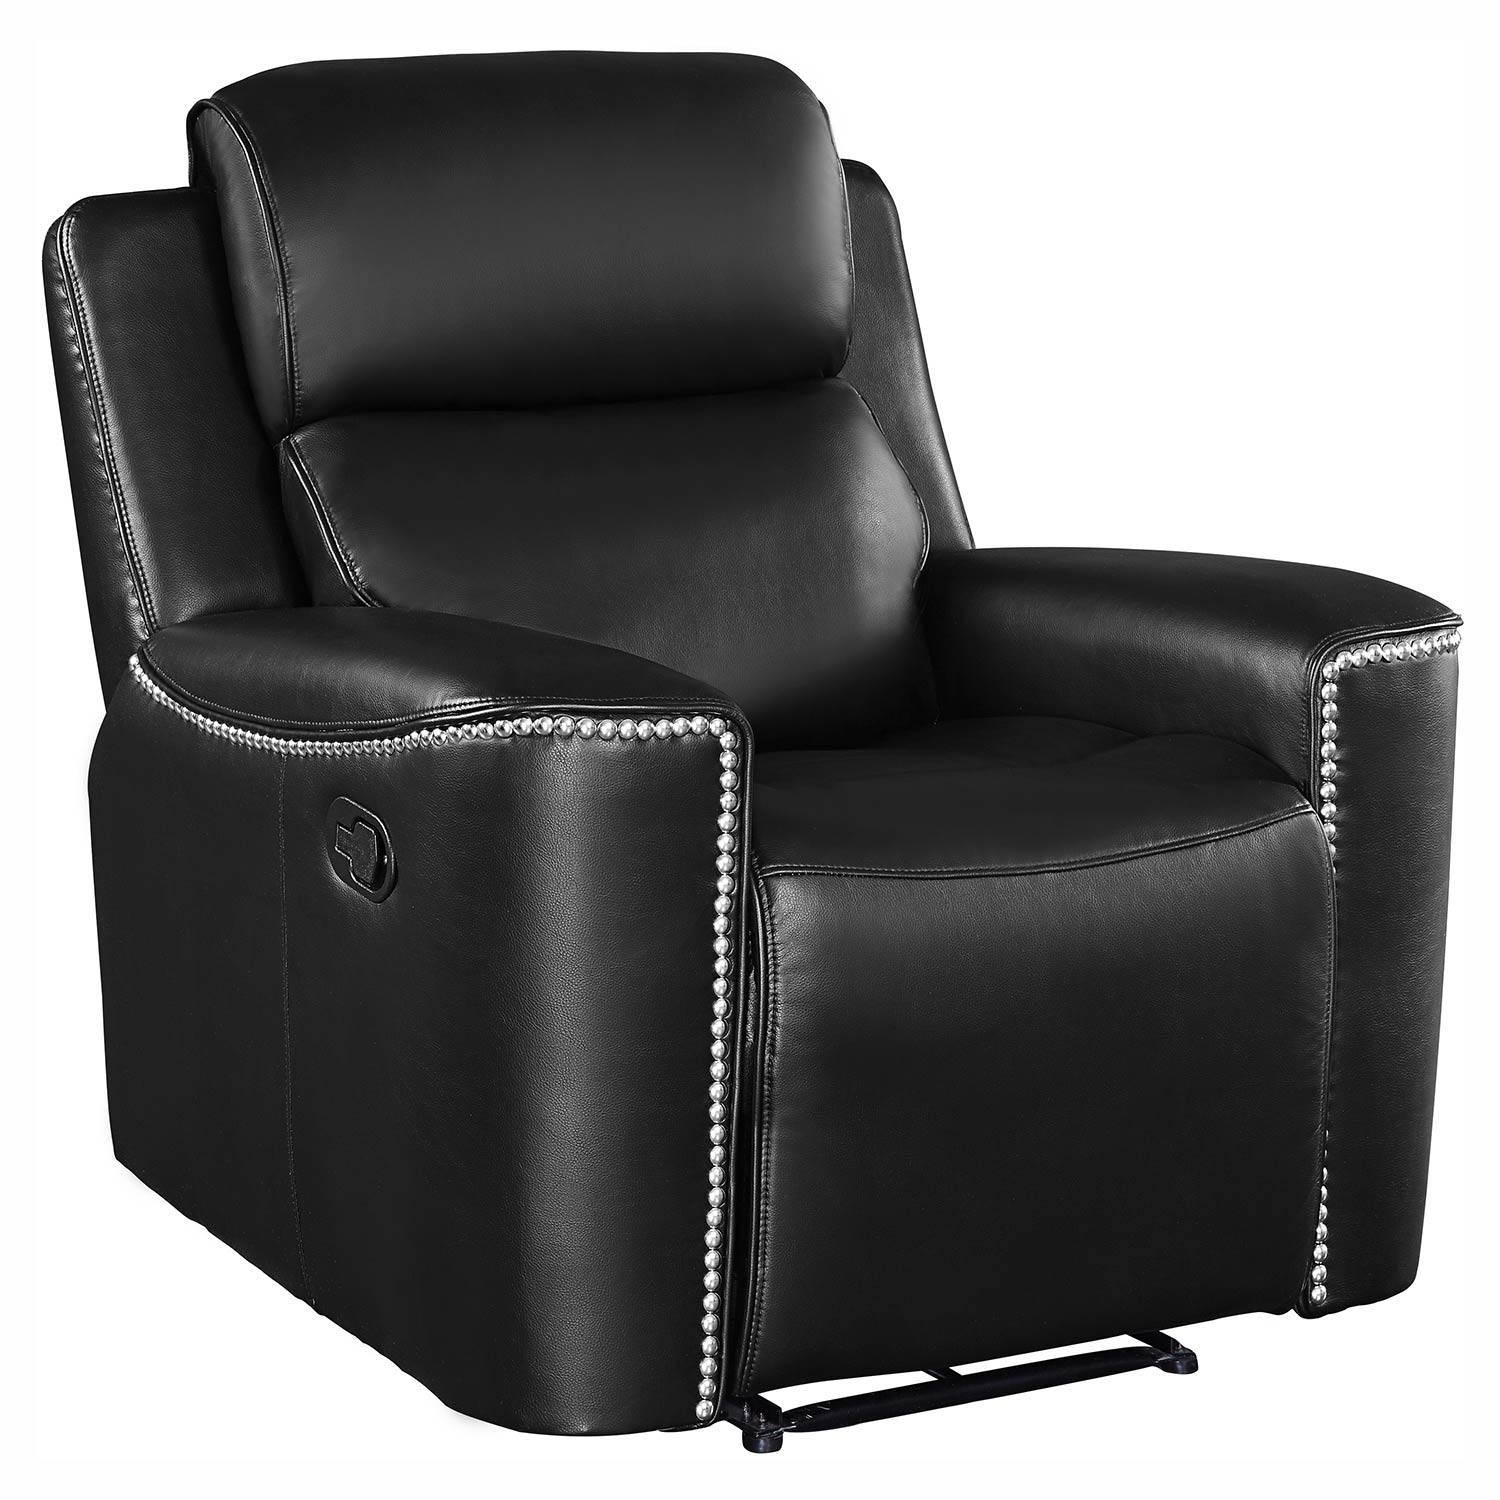 Homelegance Altair Reclining Chair - Black